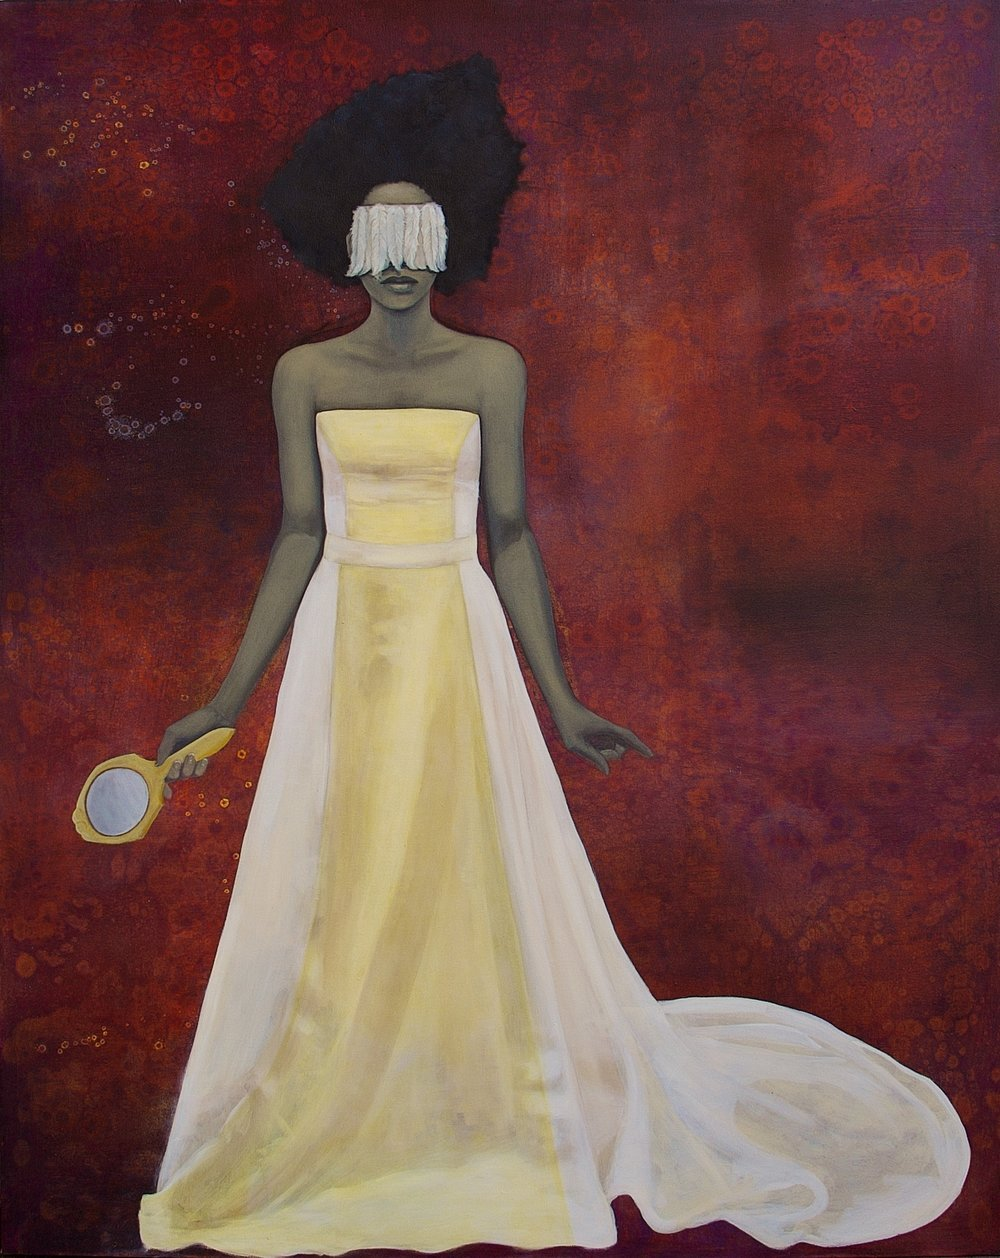 The Fairest of the Not So Fair    oil on canvas, 72 x 67 inches     2008